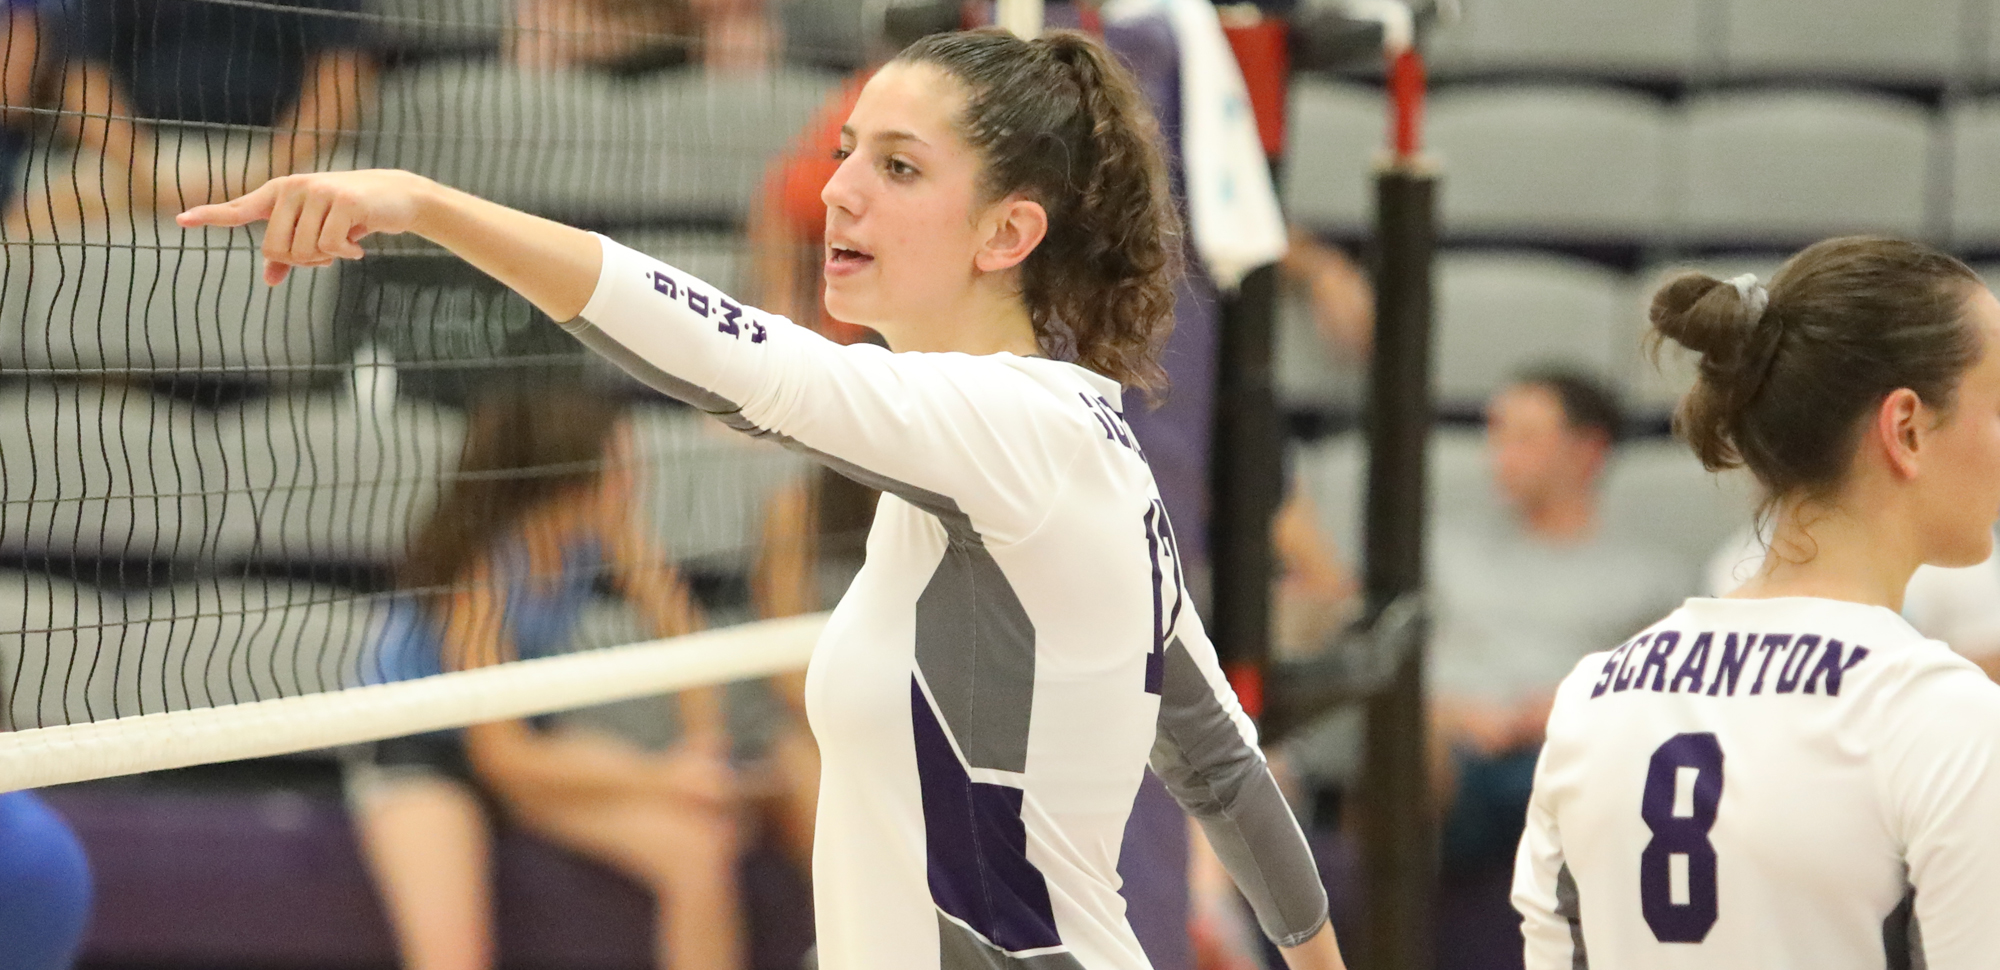 Sophomore Eryn Boken had a season-high 12 kills in a defeat at SUNY-Cortland on Wednesday night. © Photo by Timothy R. Dougherty / doubleeaglephotography.com